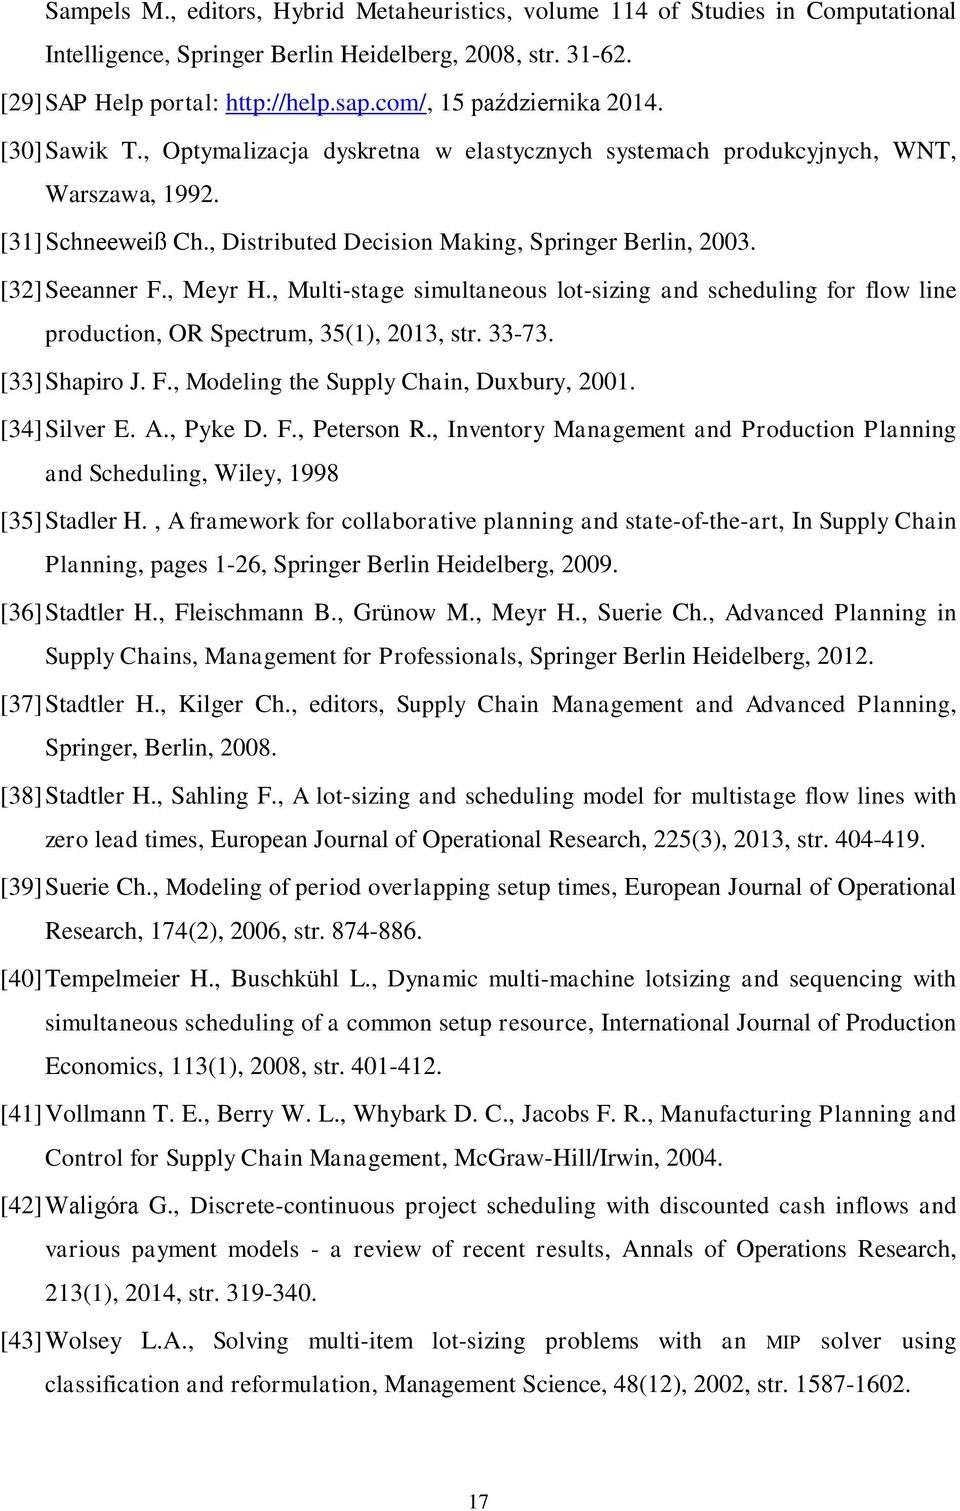 [32] Seeanner F., Meyr H., Multi-stage simultaneous lot-sizing and scheduling for flow line production, OR Spectrum, 35(1), 2013, str. 33-73. [33] Shapiro J. F., Modeling the Supply Chain, Duxbury, 2001.